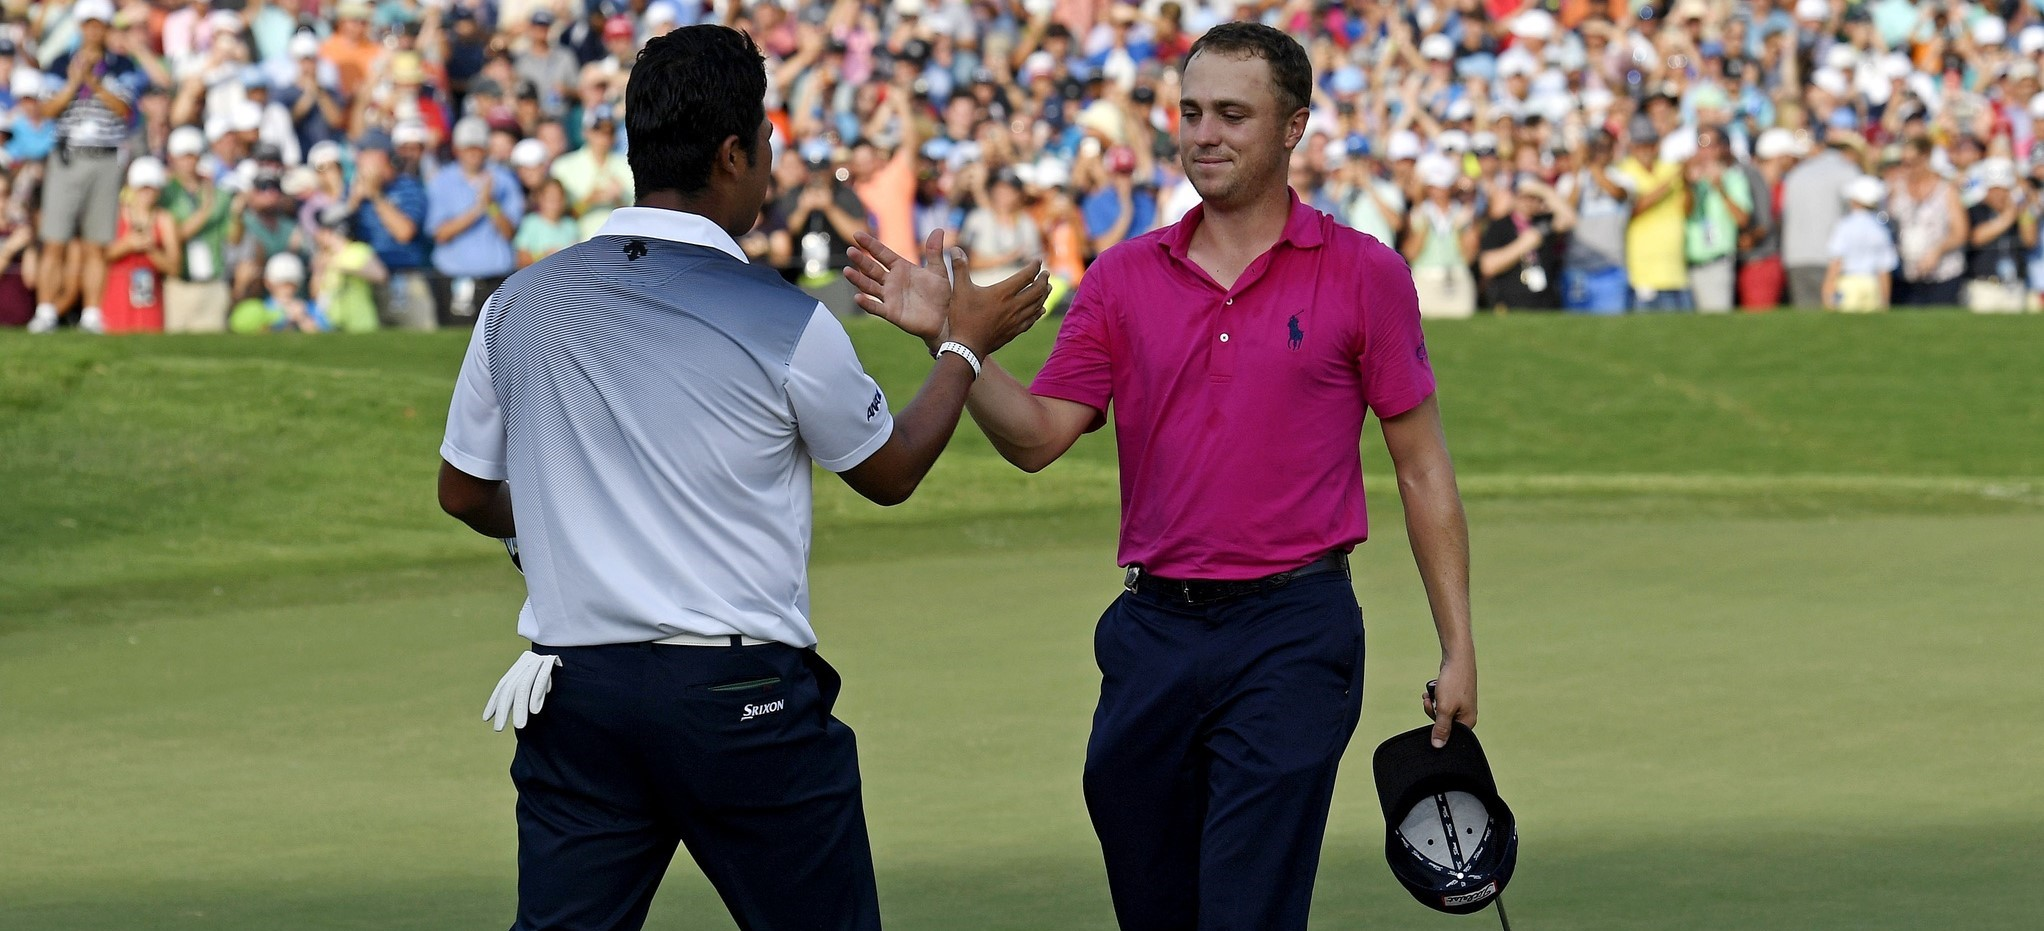 The Northern Trust: New course means no clear cut favorite at first playoff event article feature image